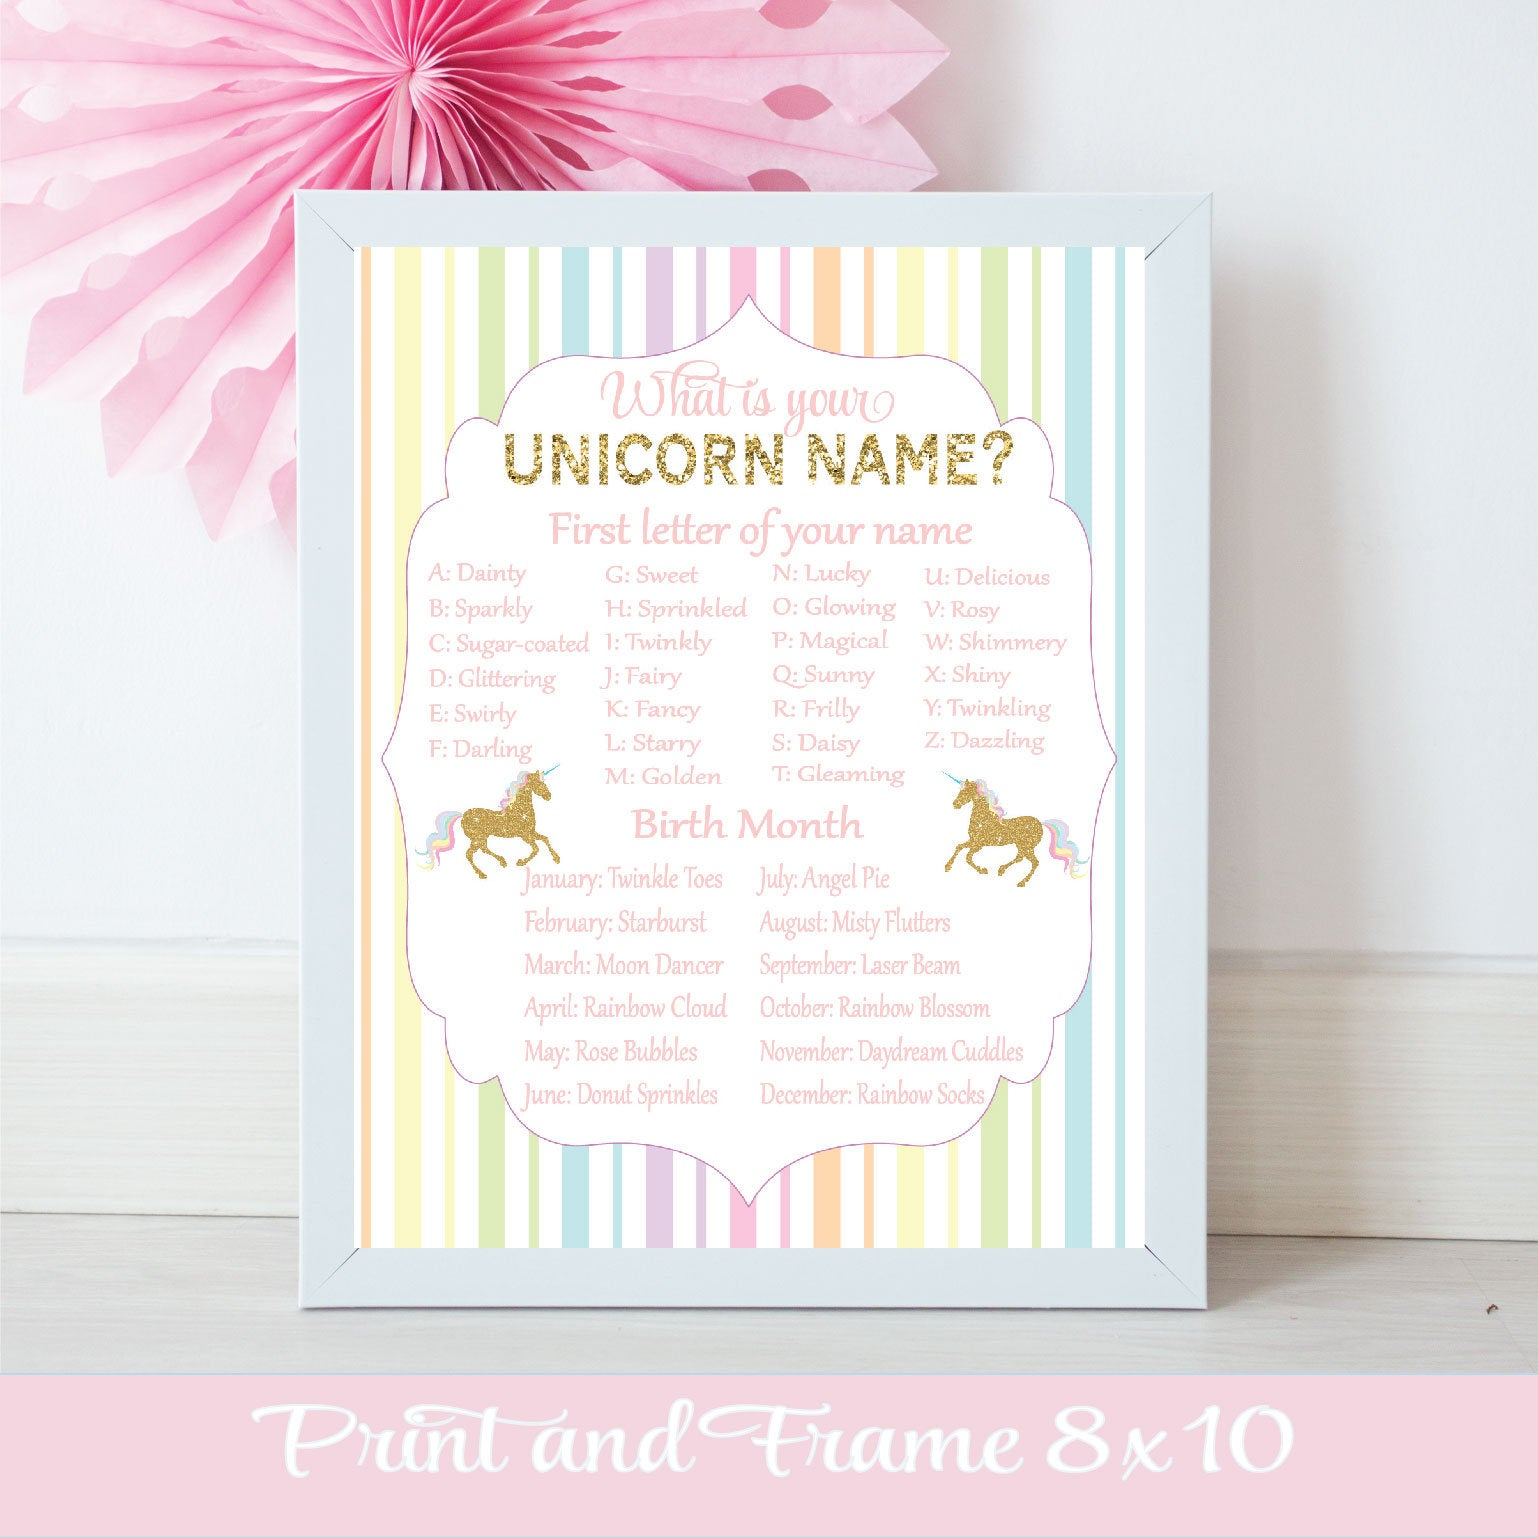 Birthday printables sugar crush co unicorn name chart with letters and birth months to discover your unique unicorn name for birthday izmirmasajfo